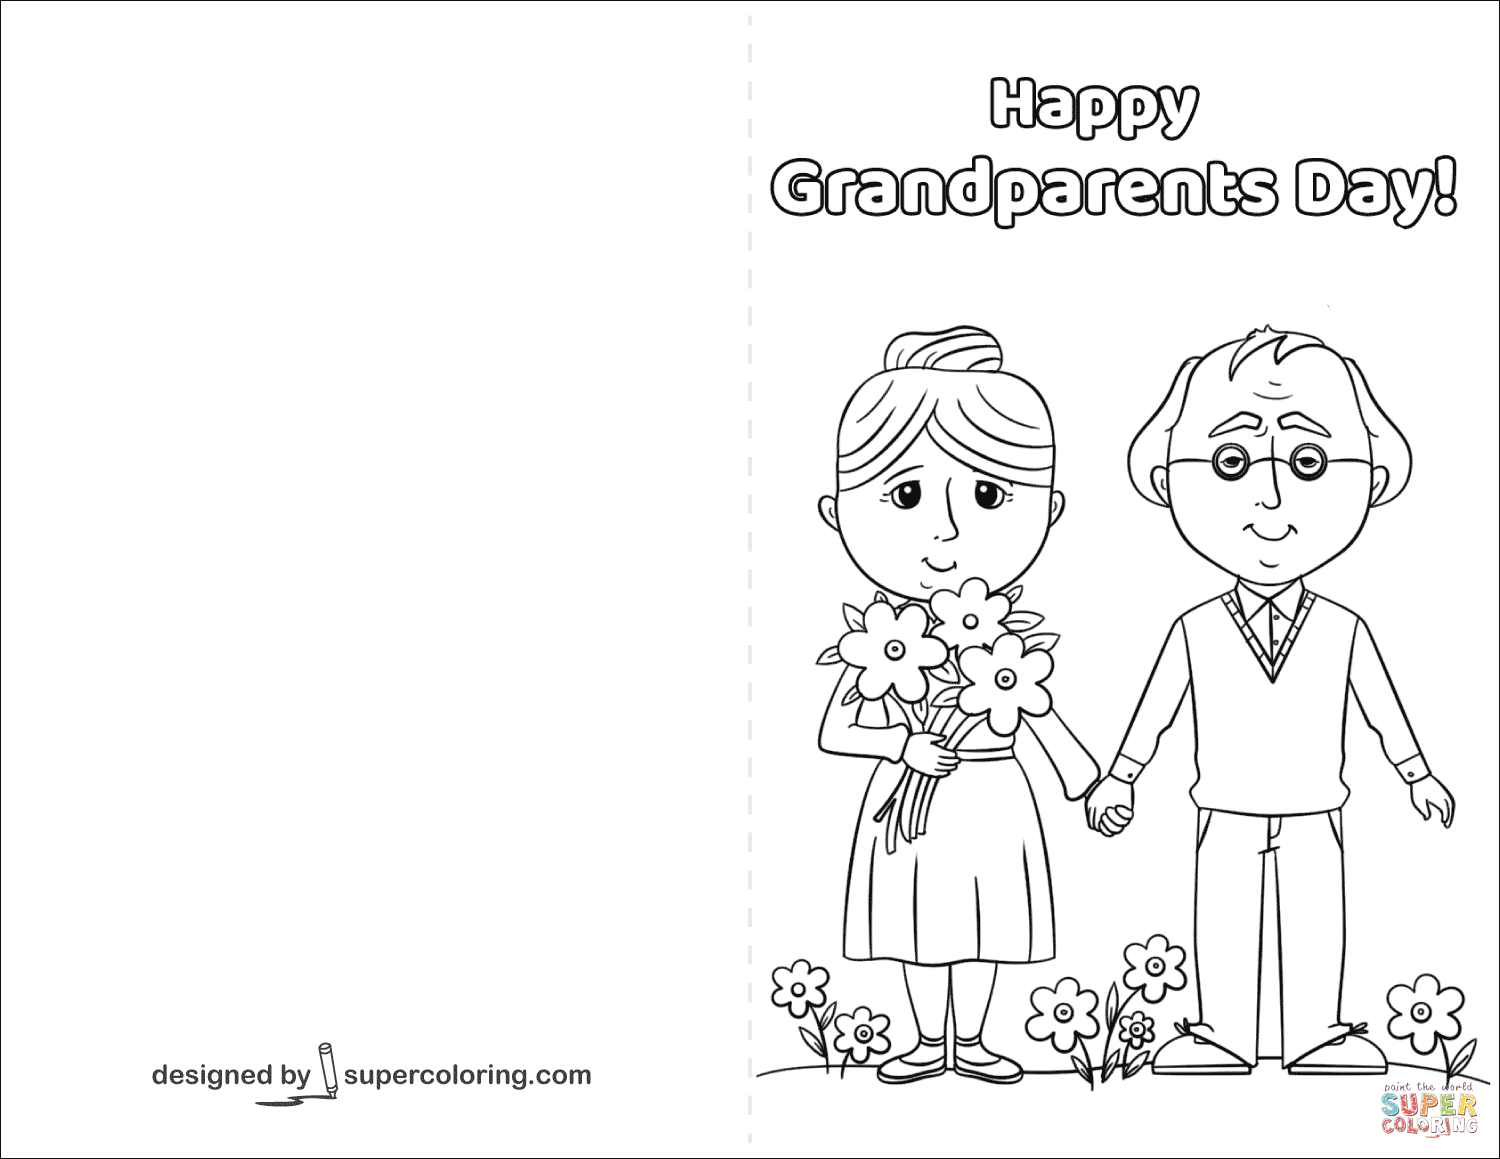 Grandparents Day Drawing at GetDrawings.com | Free for personal use ...